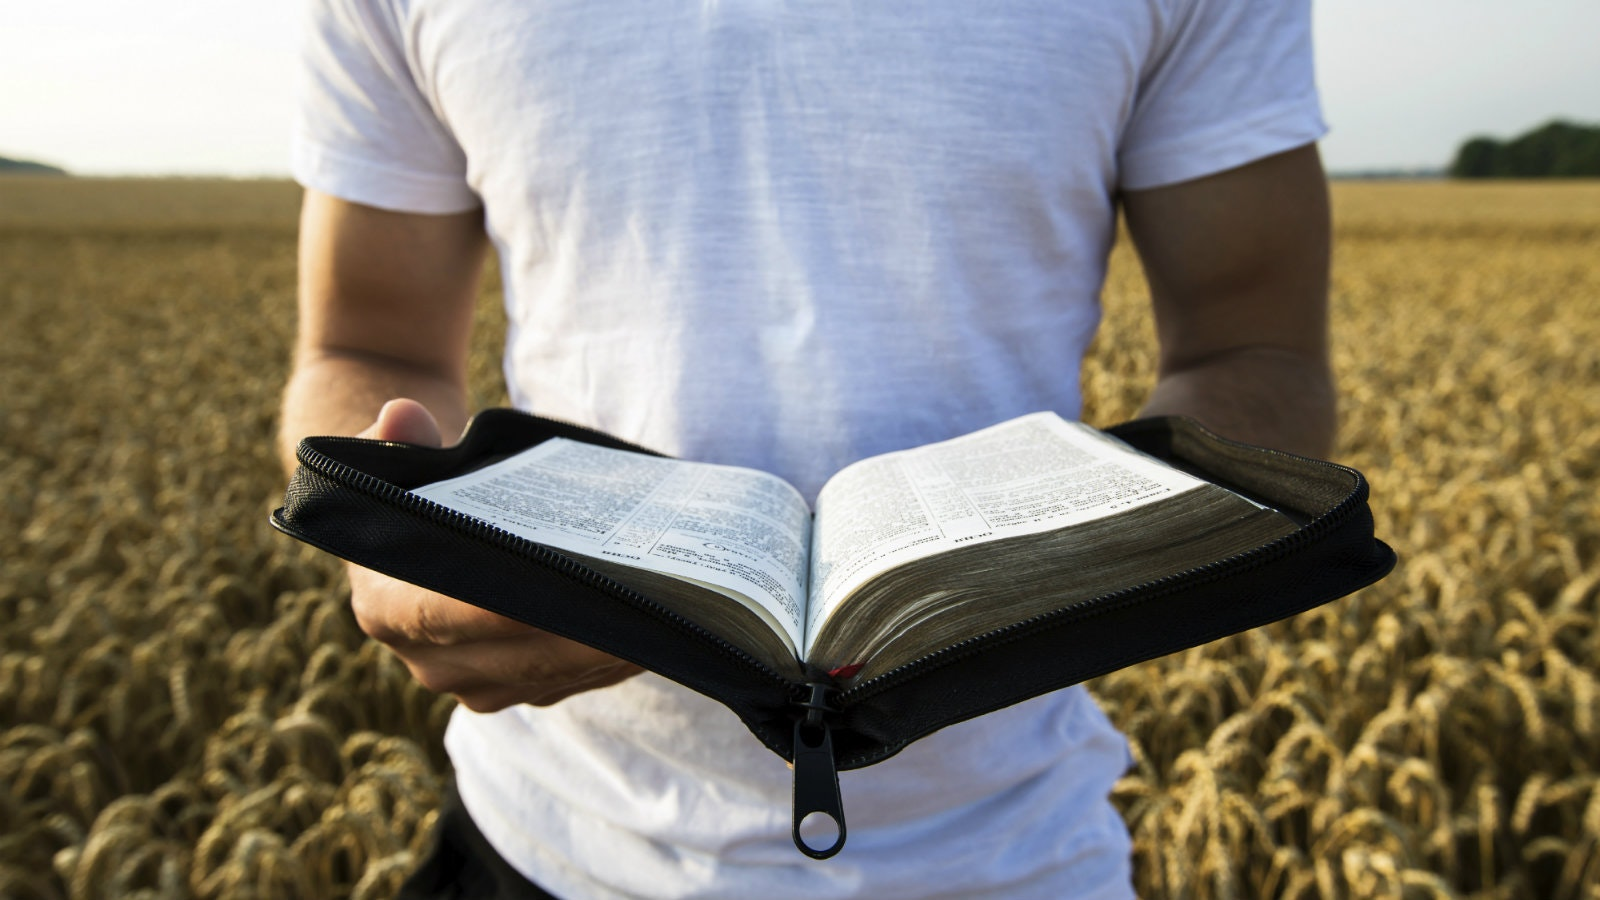 Knowledge Revealed: Discover Hidden Secrets in the Bible For Those Who Want to Know More